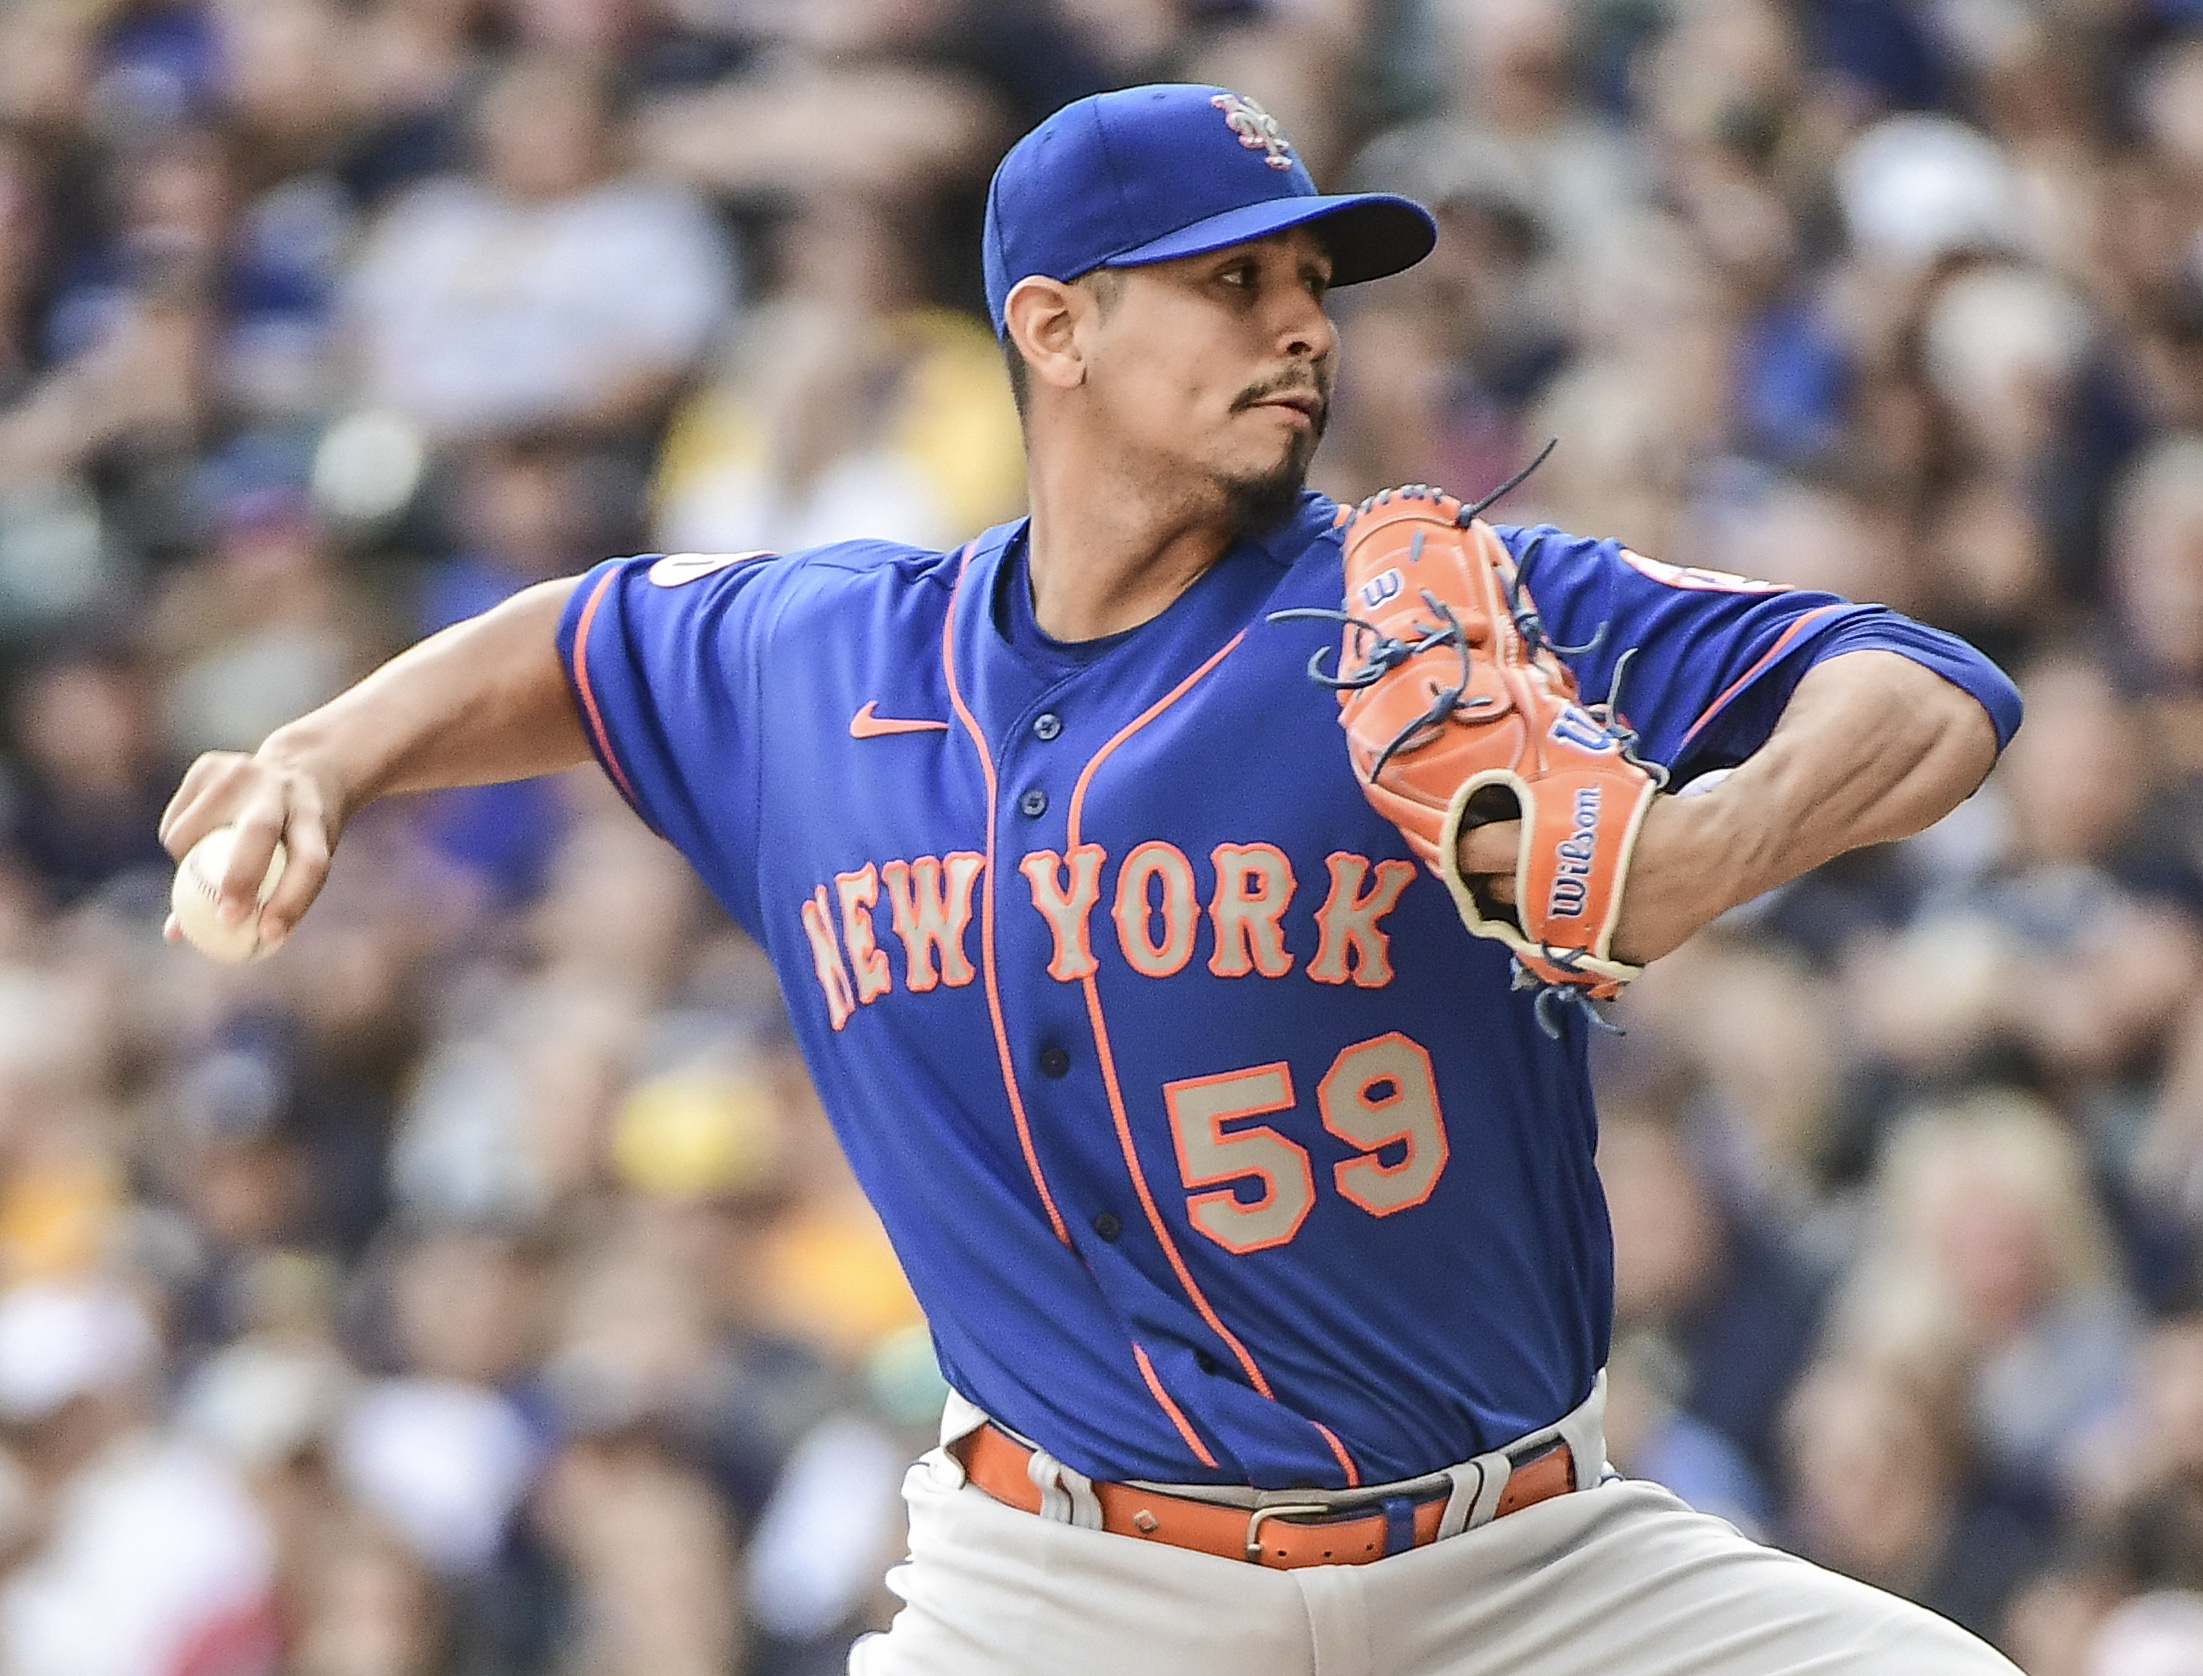 New York Mets 2021 Season in Review: Revisiting Second Half Questions